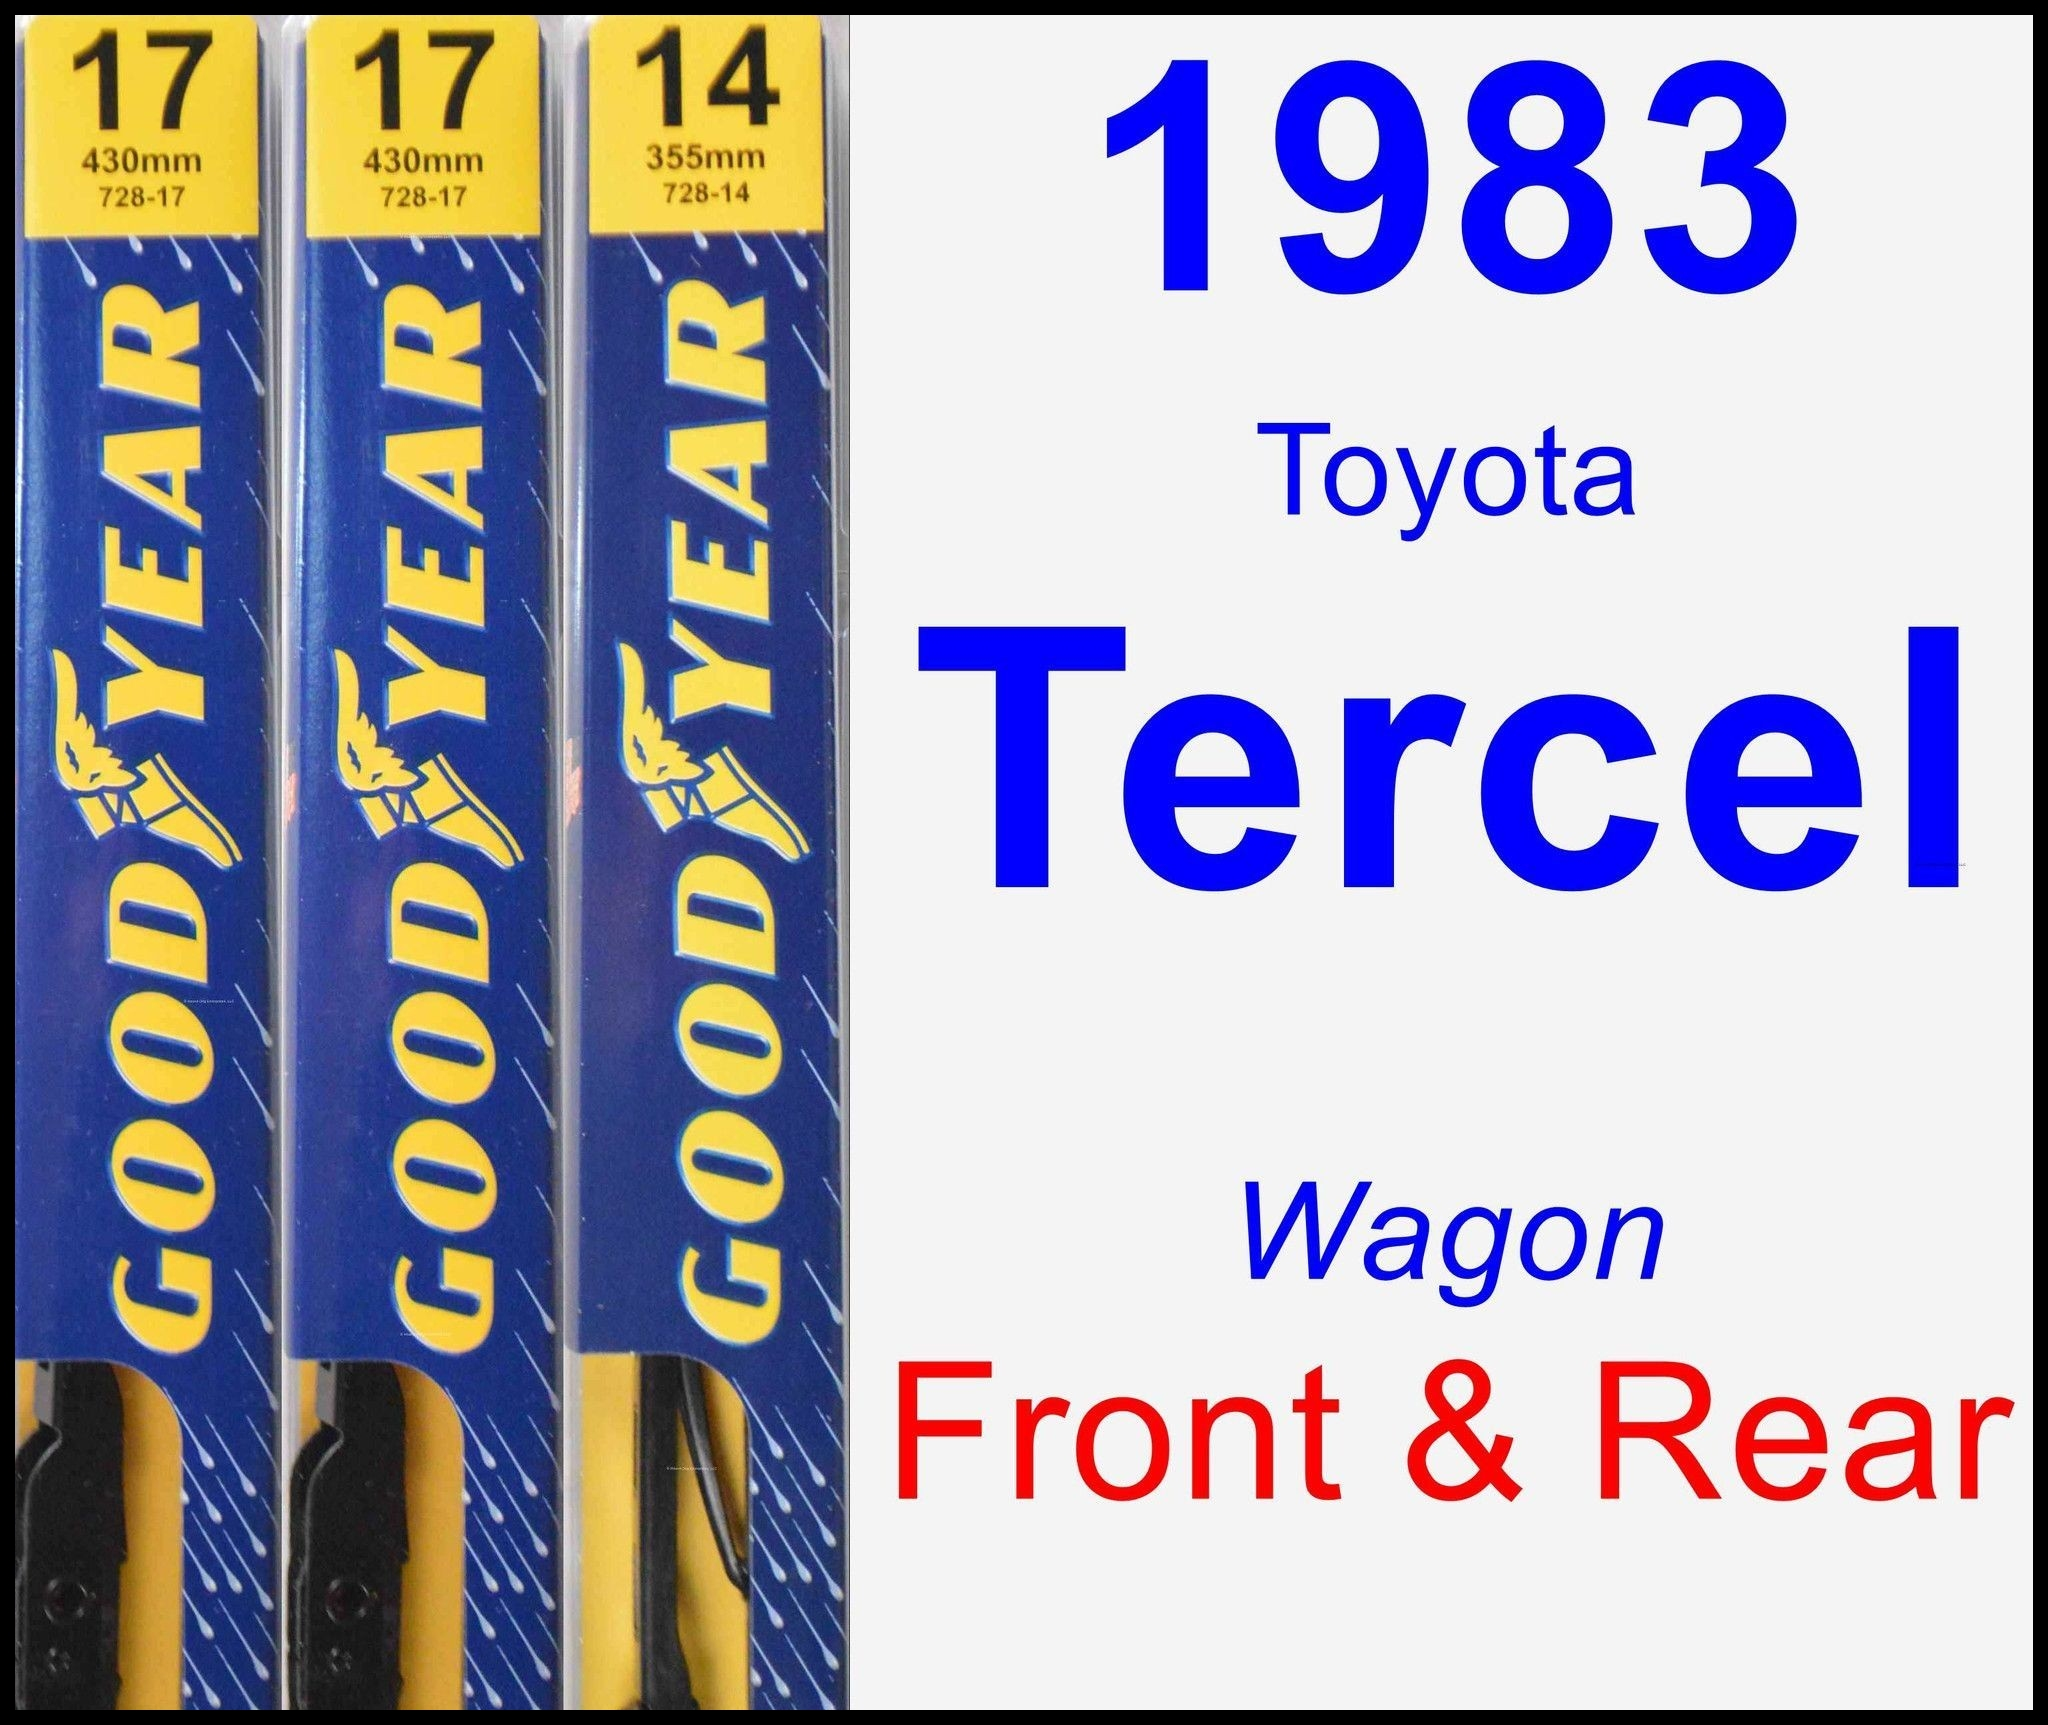 goodyear wiper blades size chart fresh front and rear wiper blade pack for 1983 toyota tercel premium of goodyear wiper blades size chart